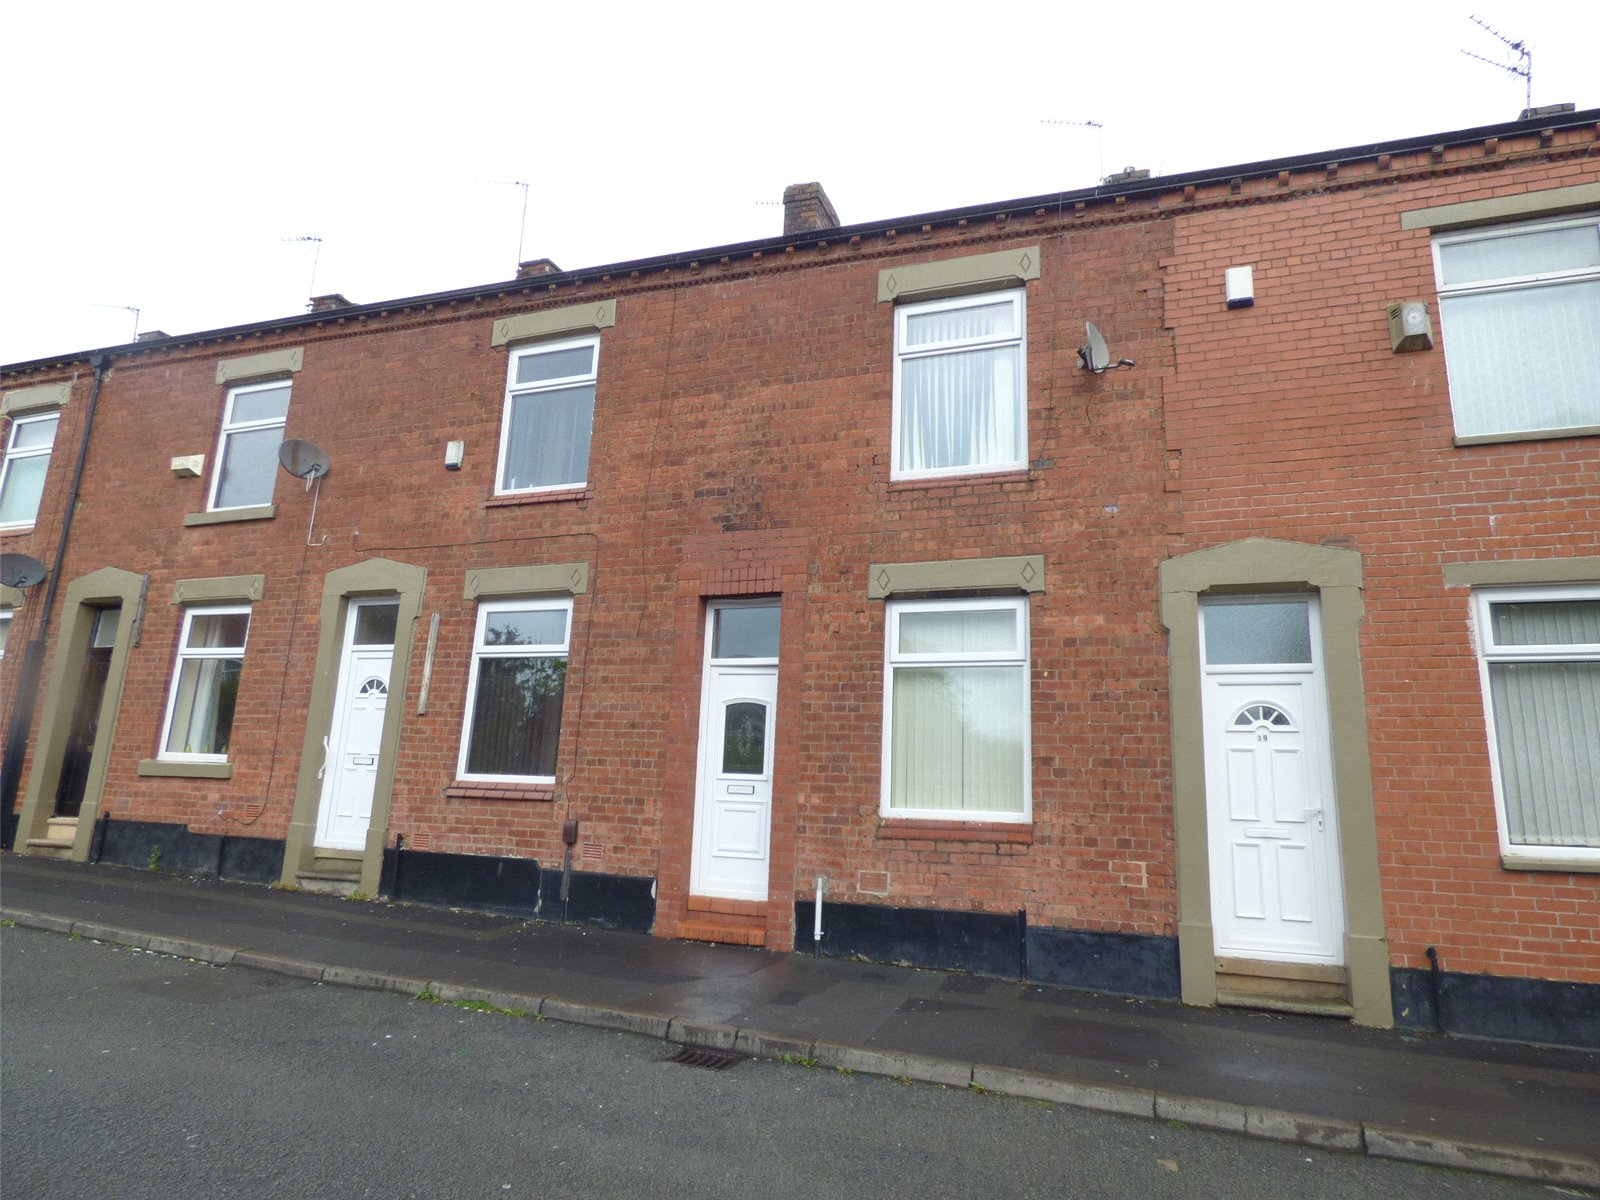 2 Bedrooms Terraced House for sale in Worsley Street, Glodwick, Oldham, Greater Manchester, OL8